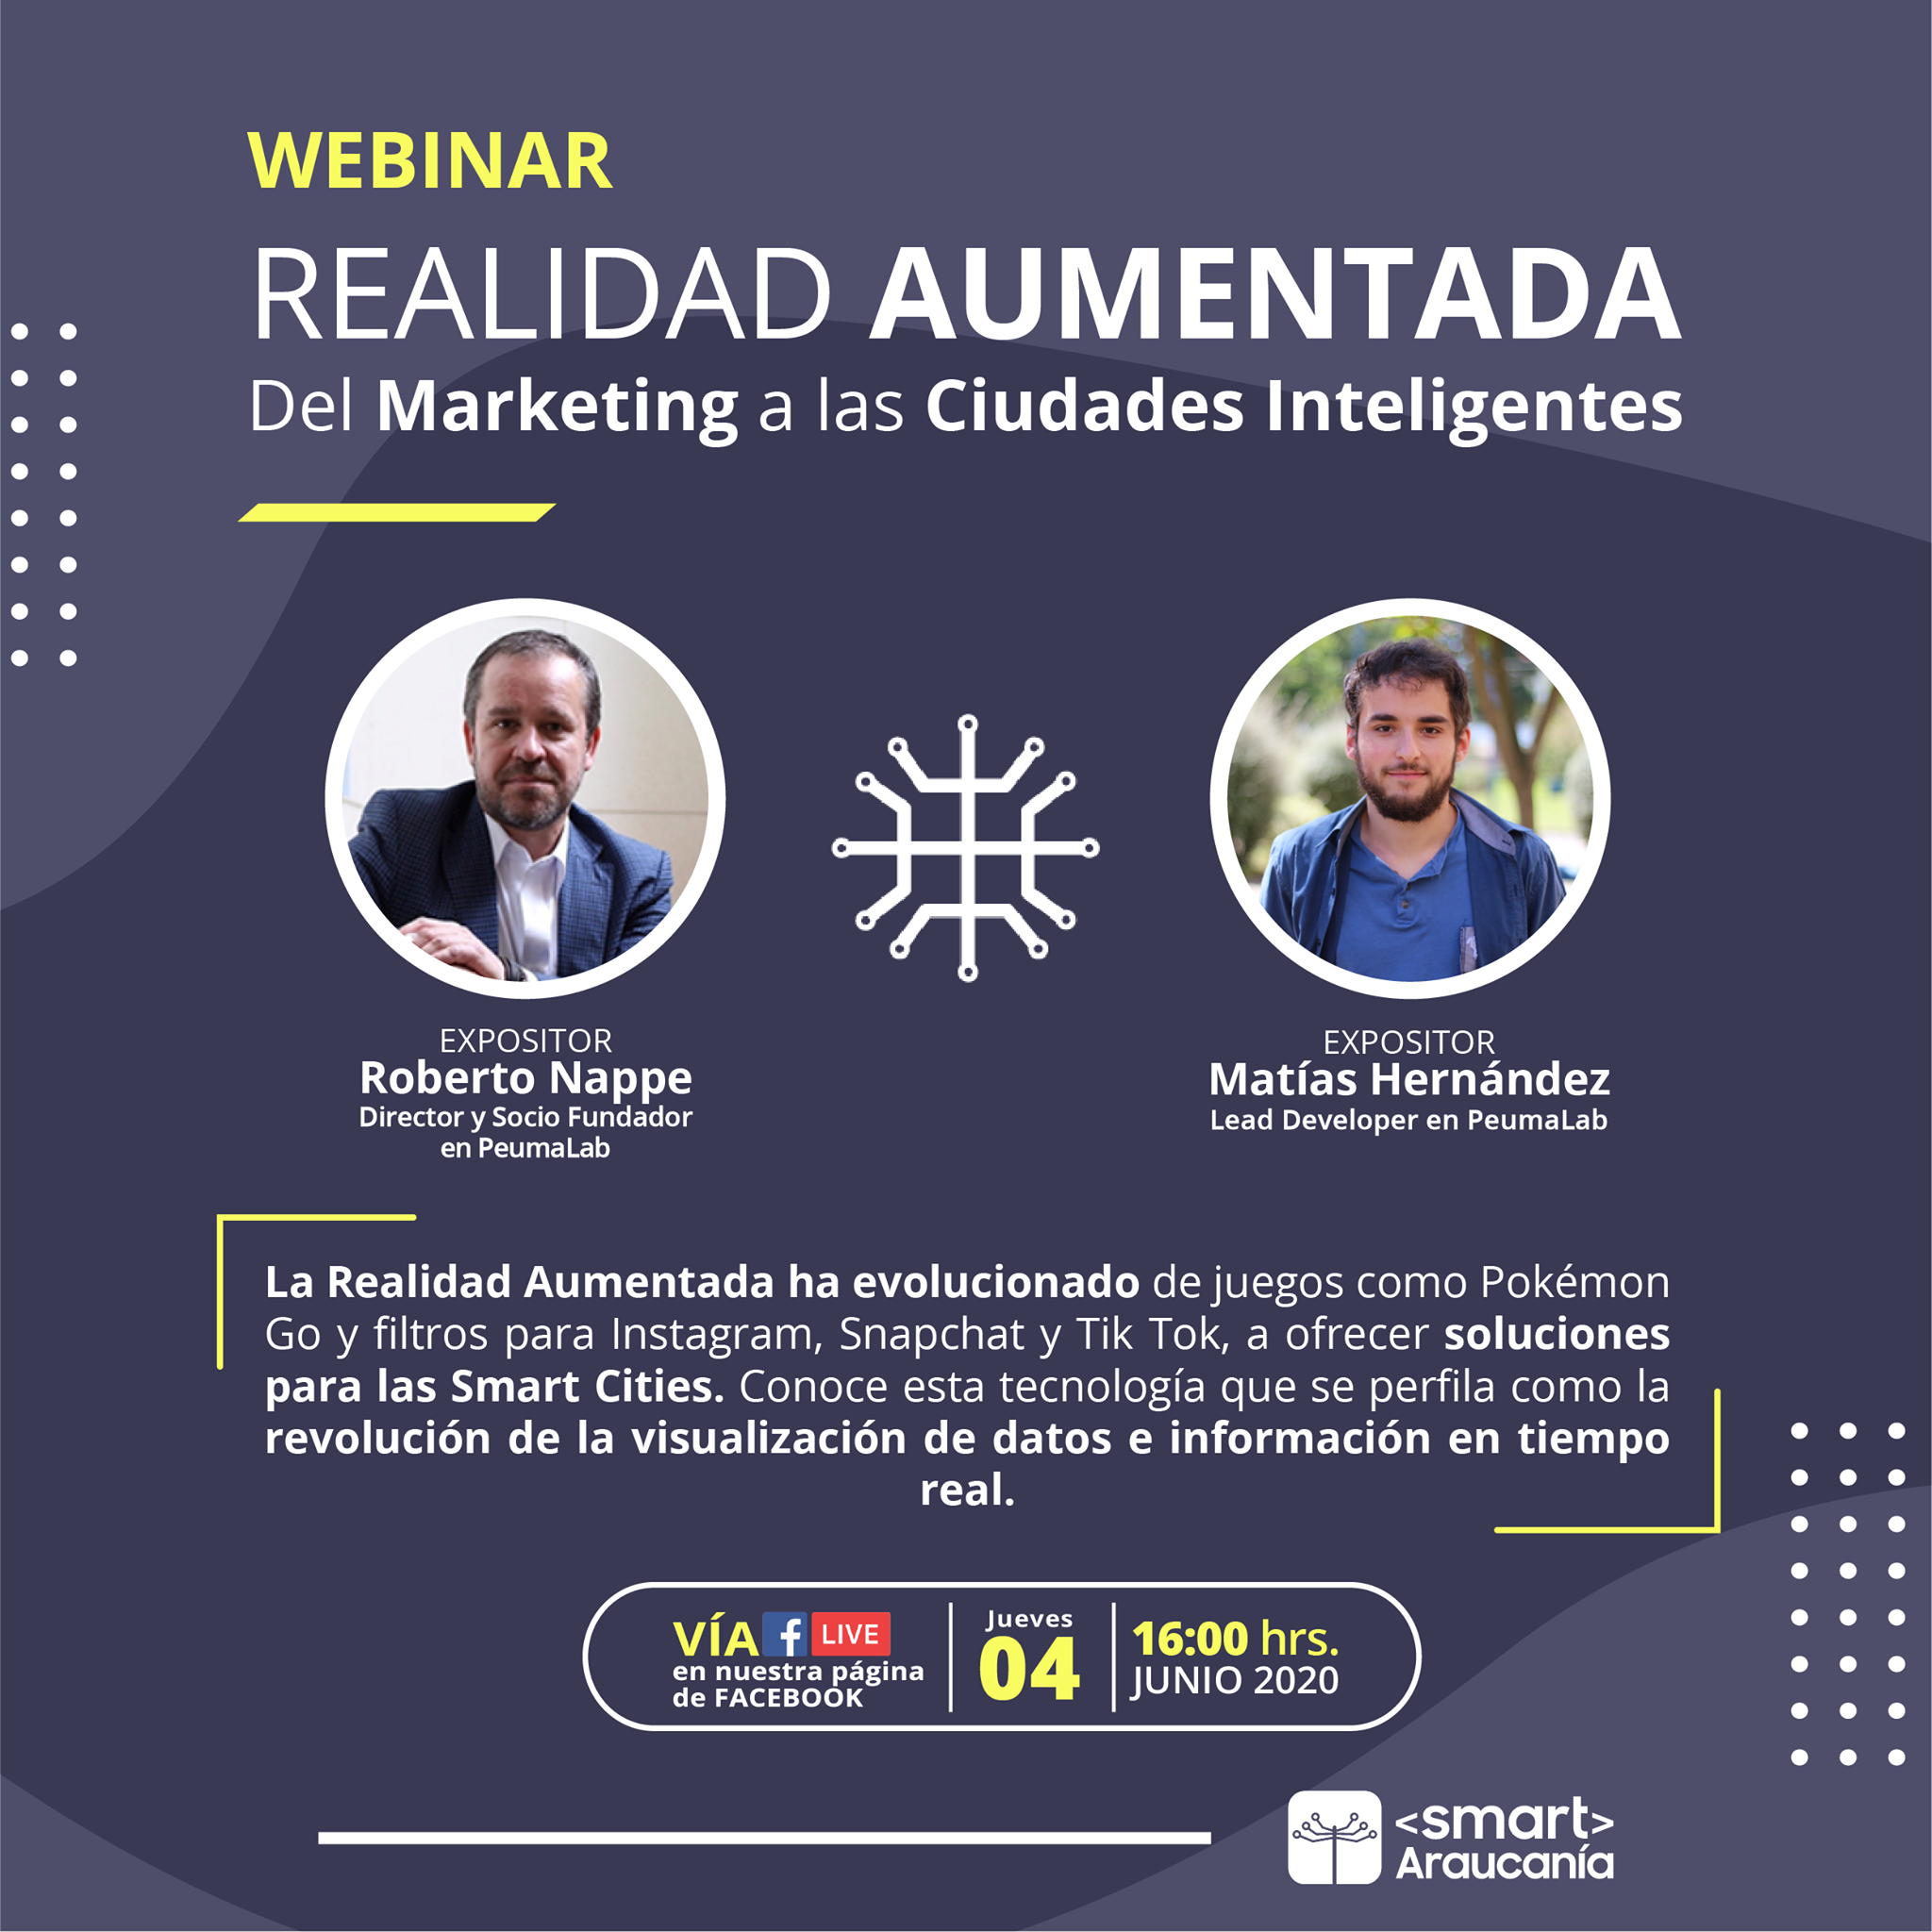 Webinar - La Realidad Aumentada, del marketing a las ciudades inteligentes